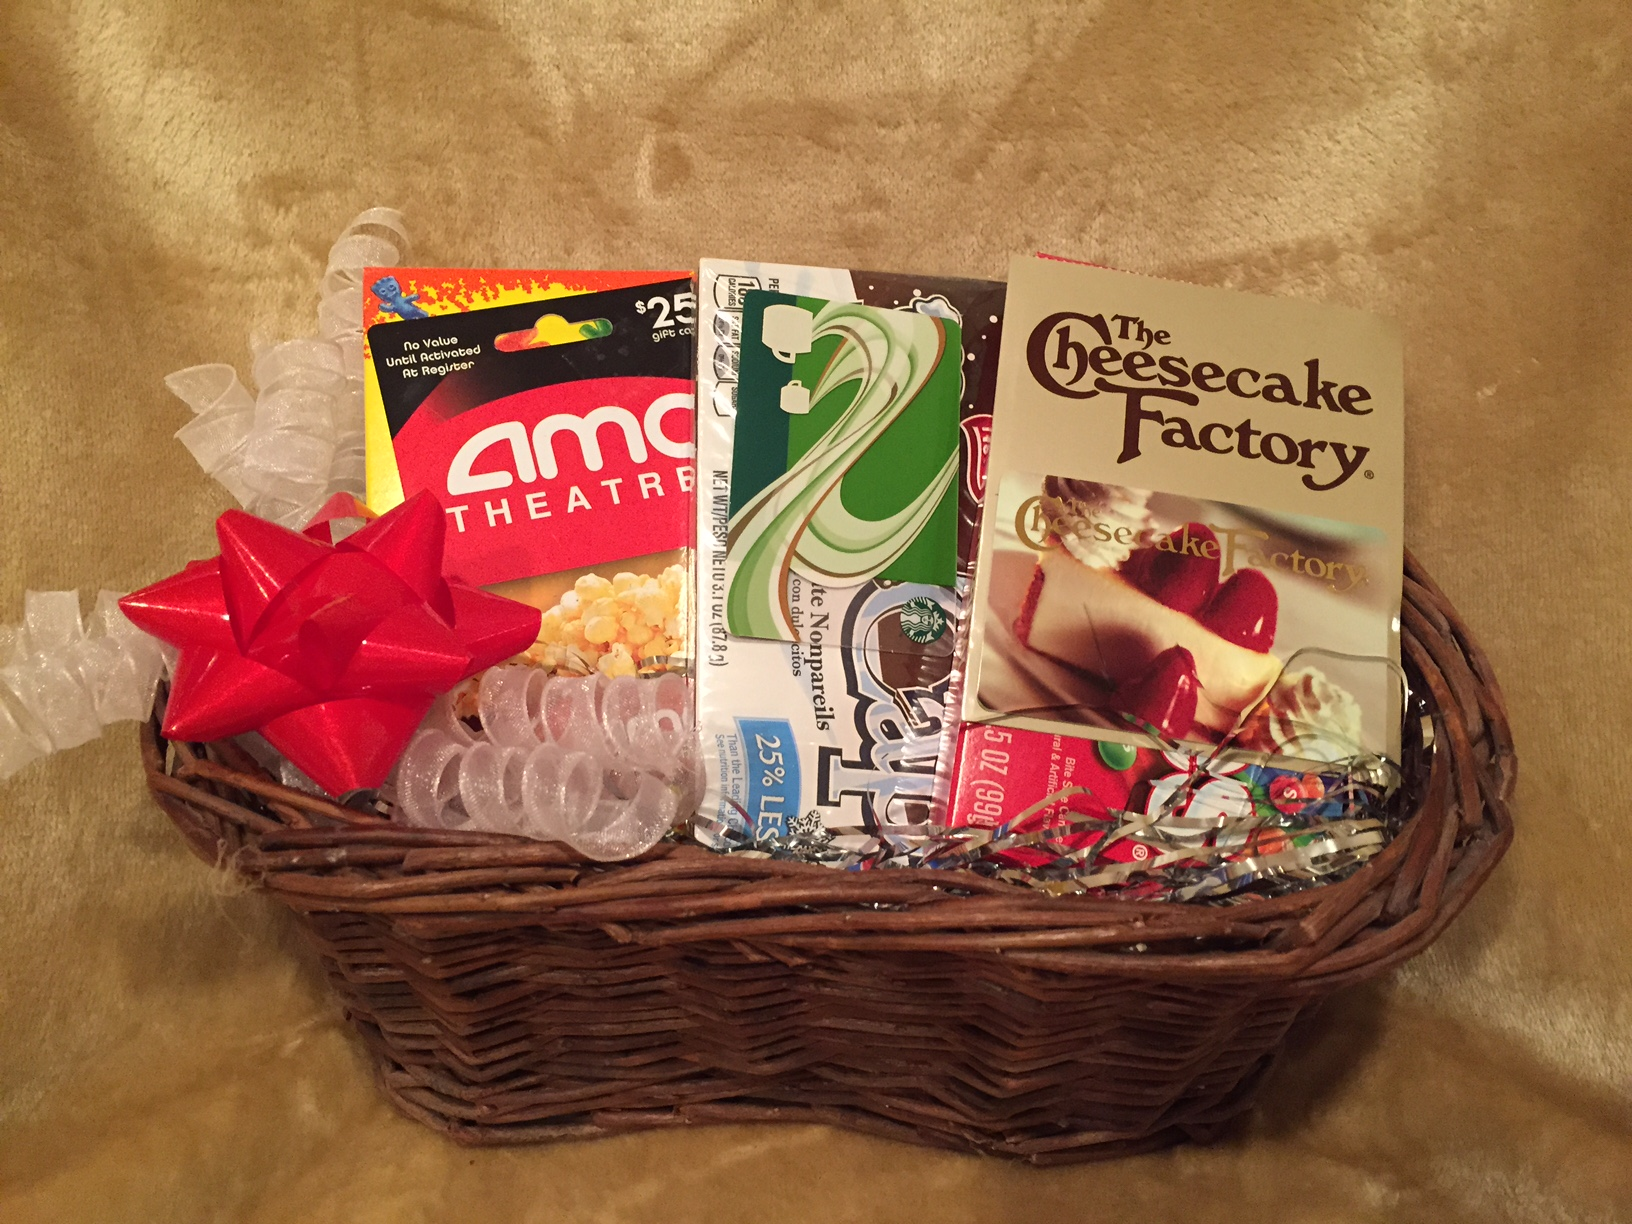 Cheesecake Factory, movies and Starbucks basket